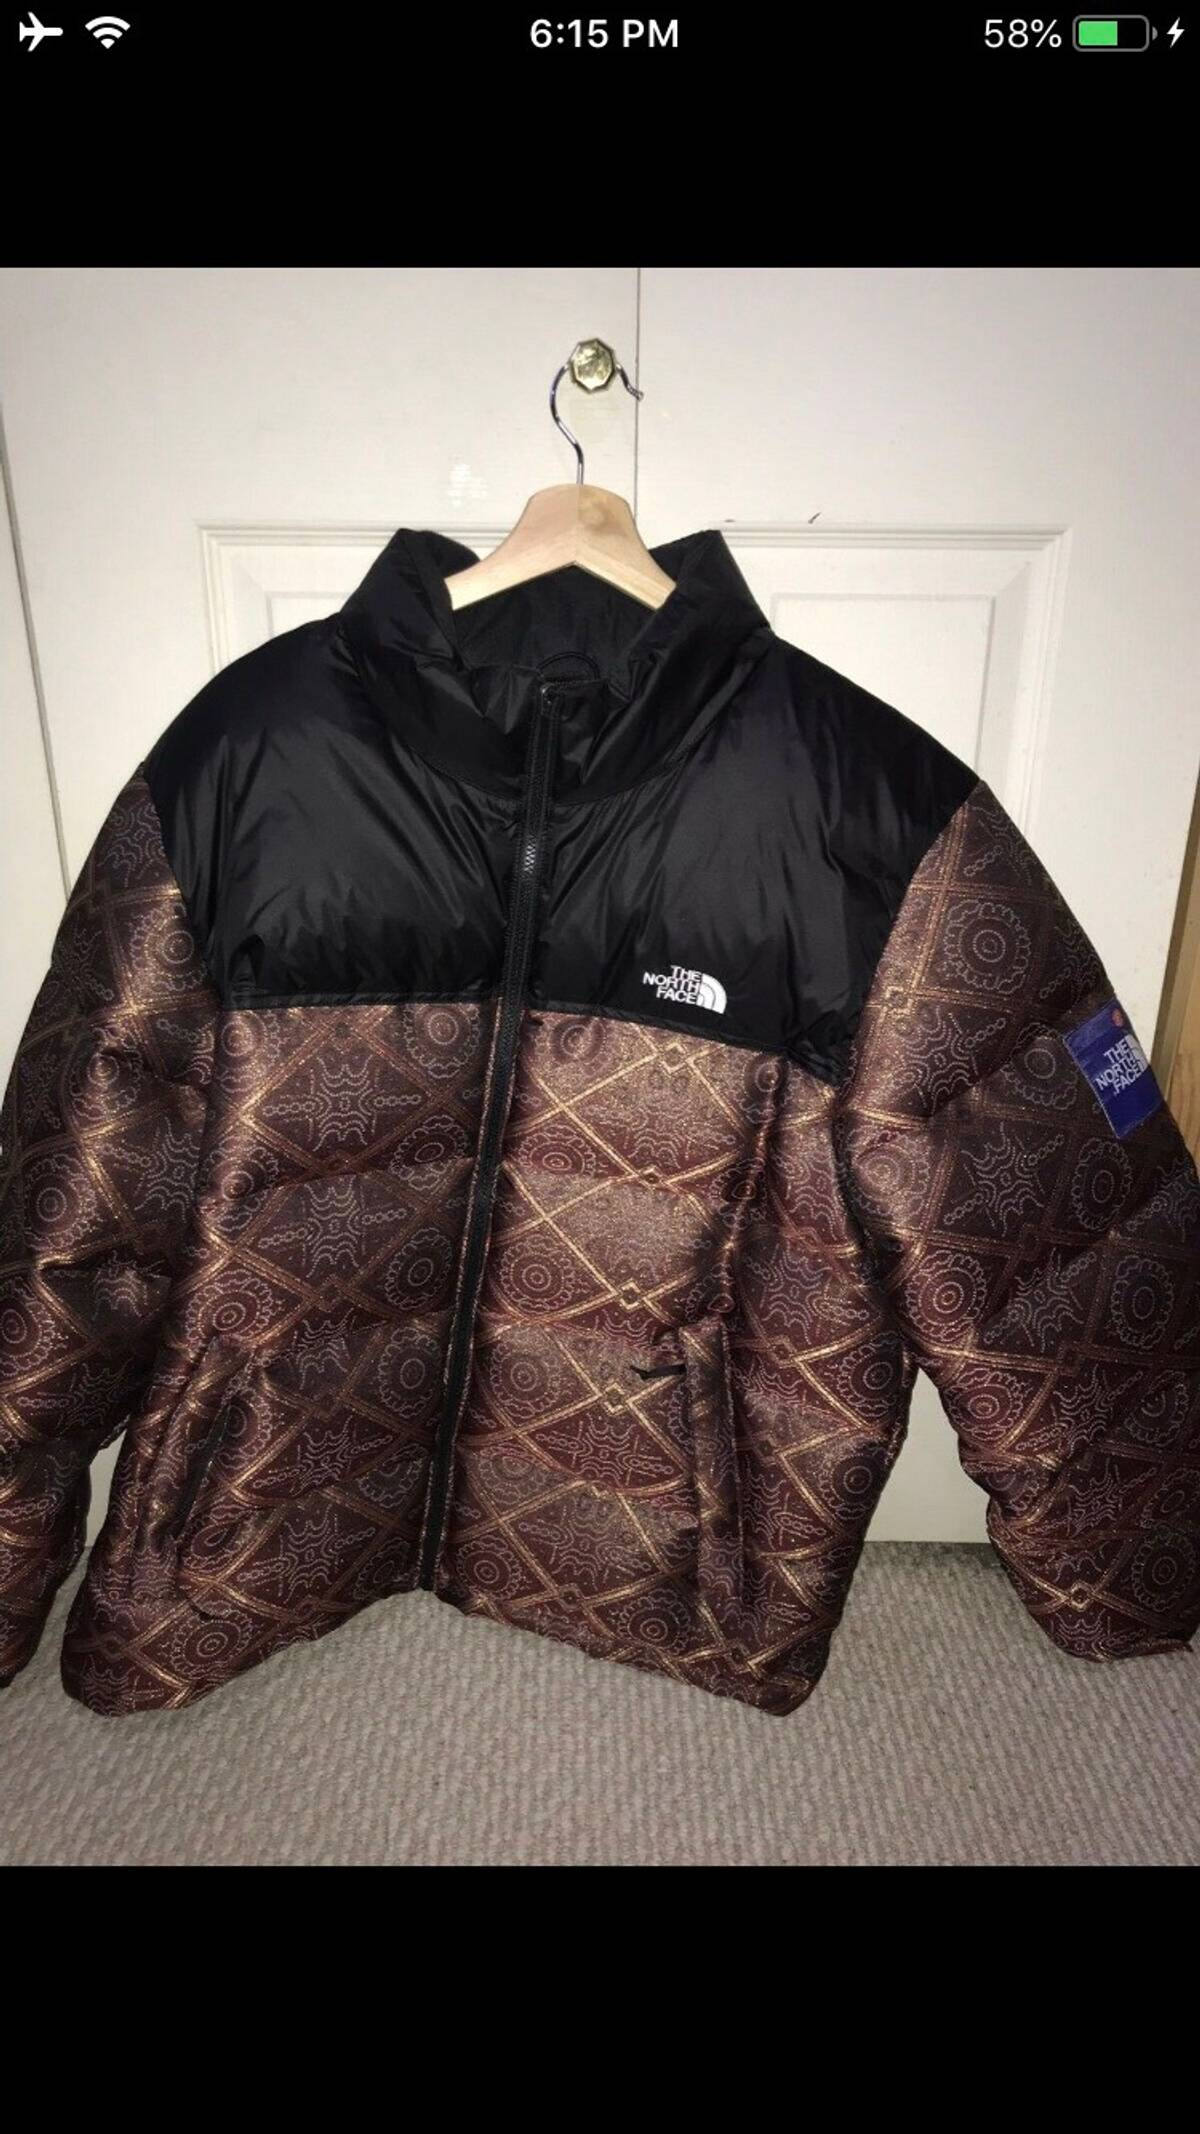 a1d6c254b Nordstrom × The North Face Nwt The North Face X Nordstrom Nuptse 700 Jacket  Size Xl $148